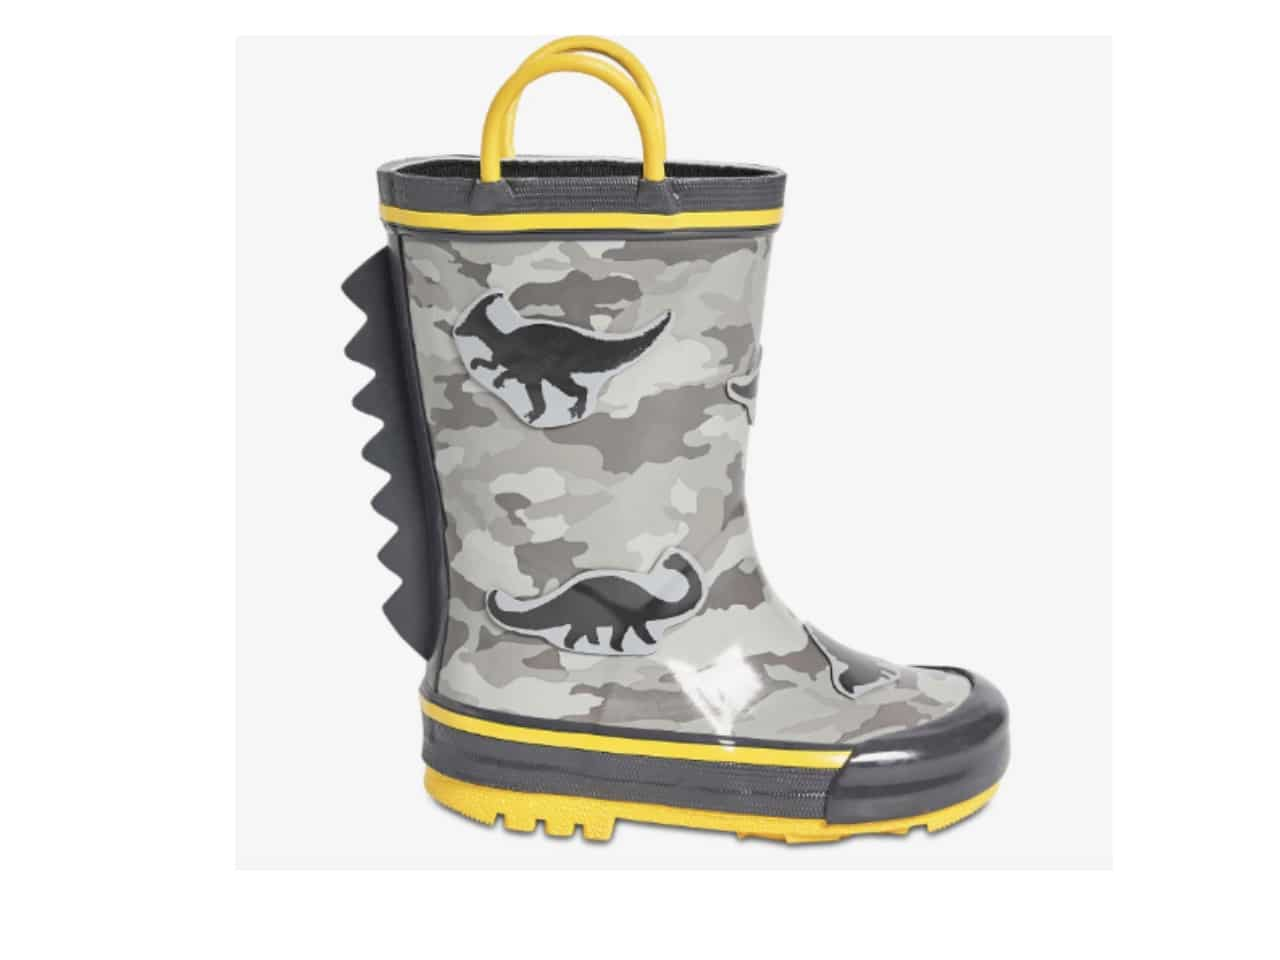 grey and yellow rain boot with dinosaurs